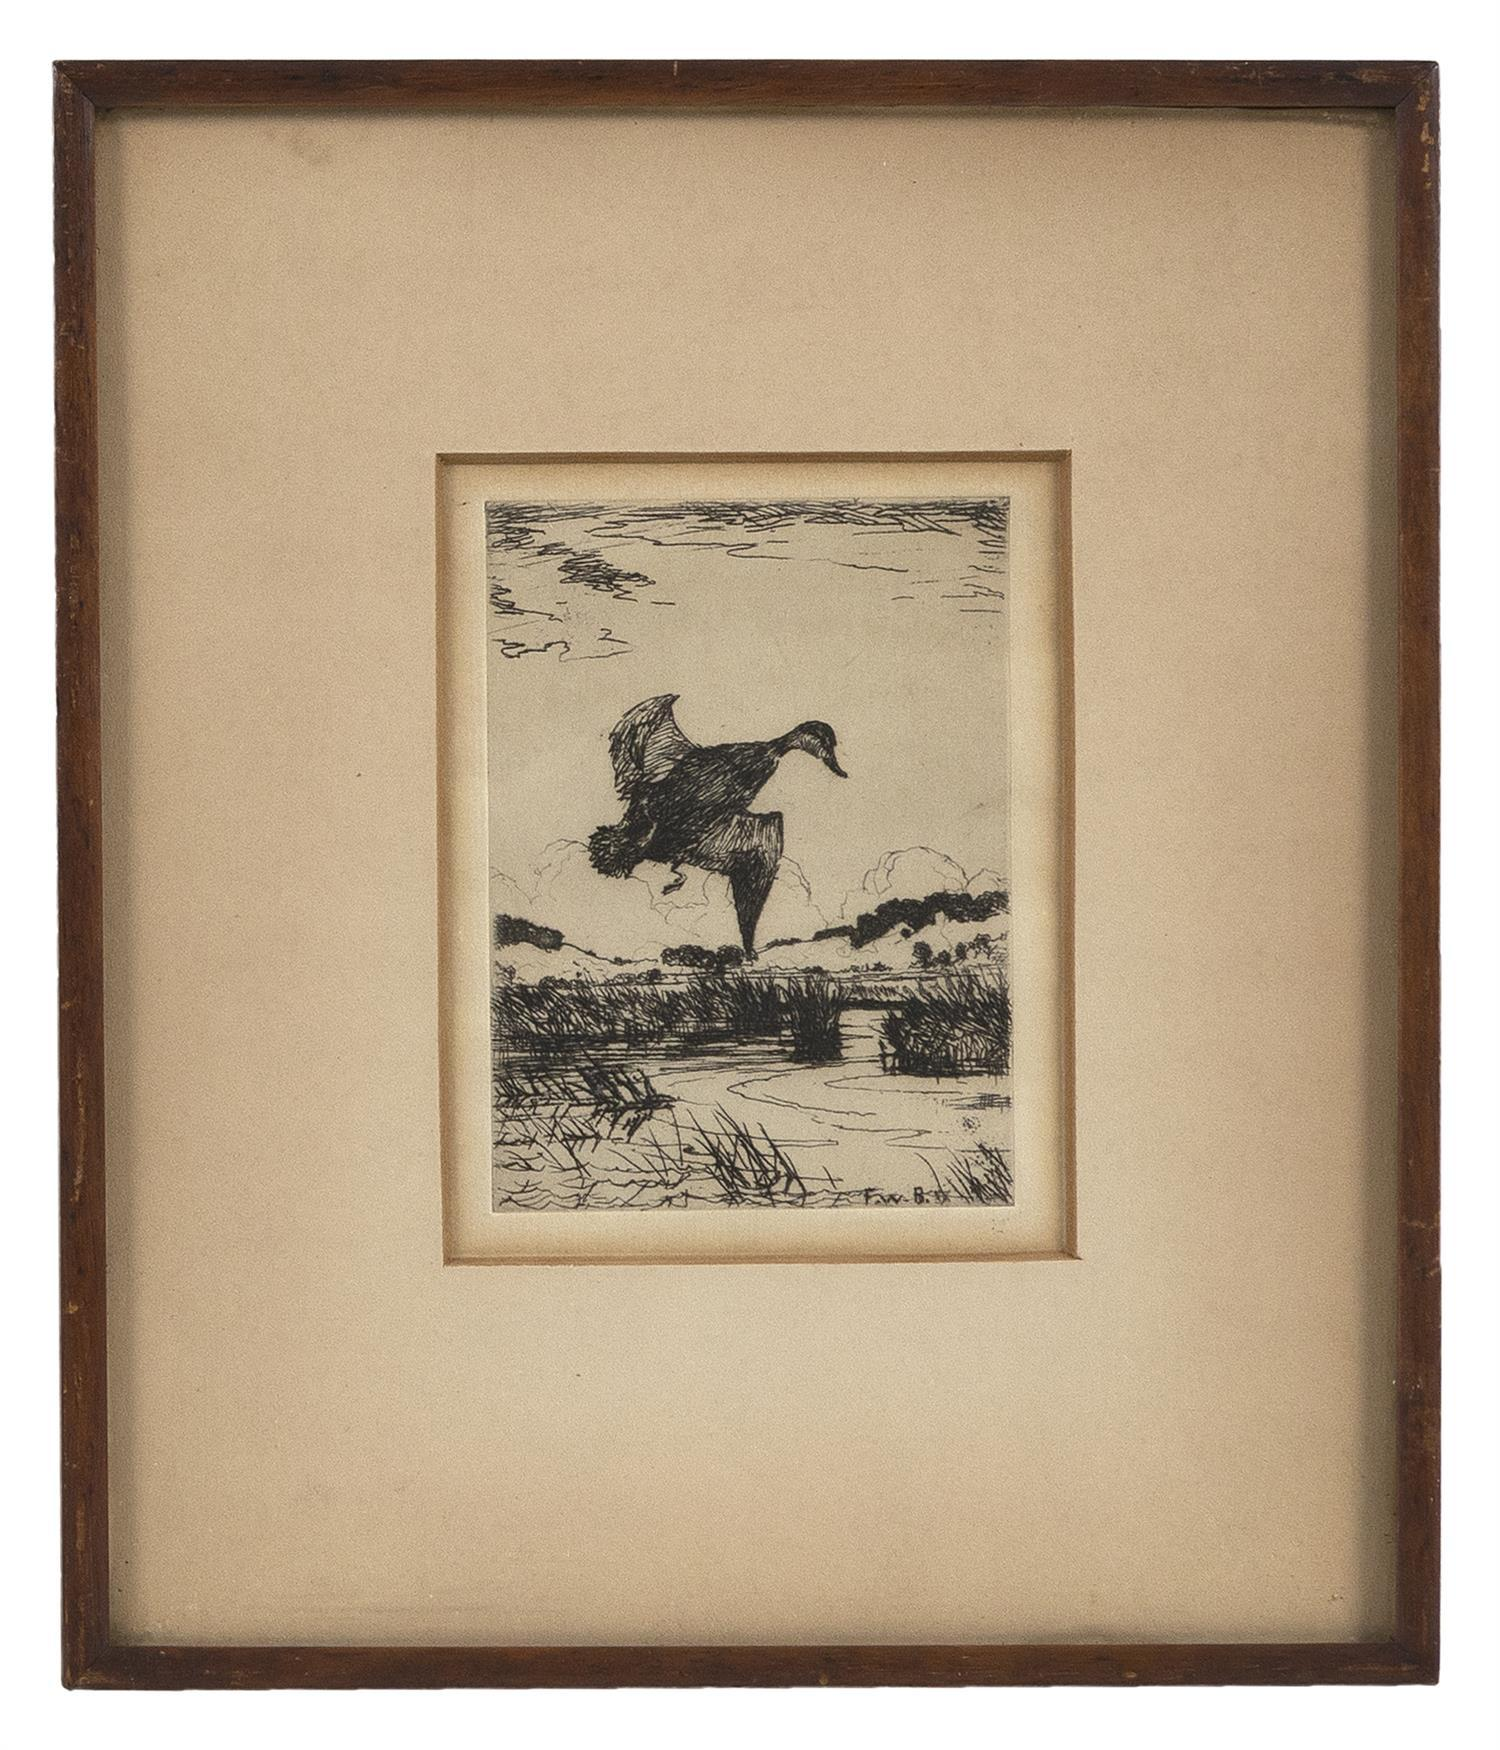 "FRANK WESTON BENSON, Massachusetts, 1862-1951, Etching of a lone black duck., 4.25"" x 3.5"" sight. Framed 9"" x 8""."